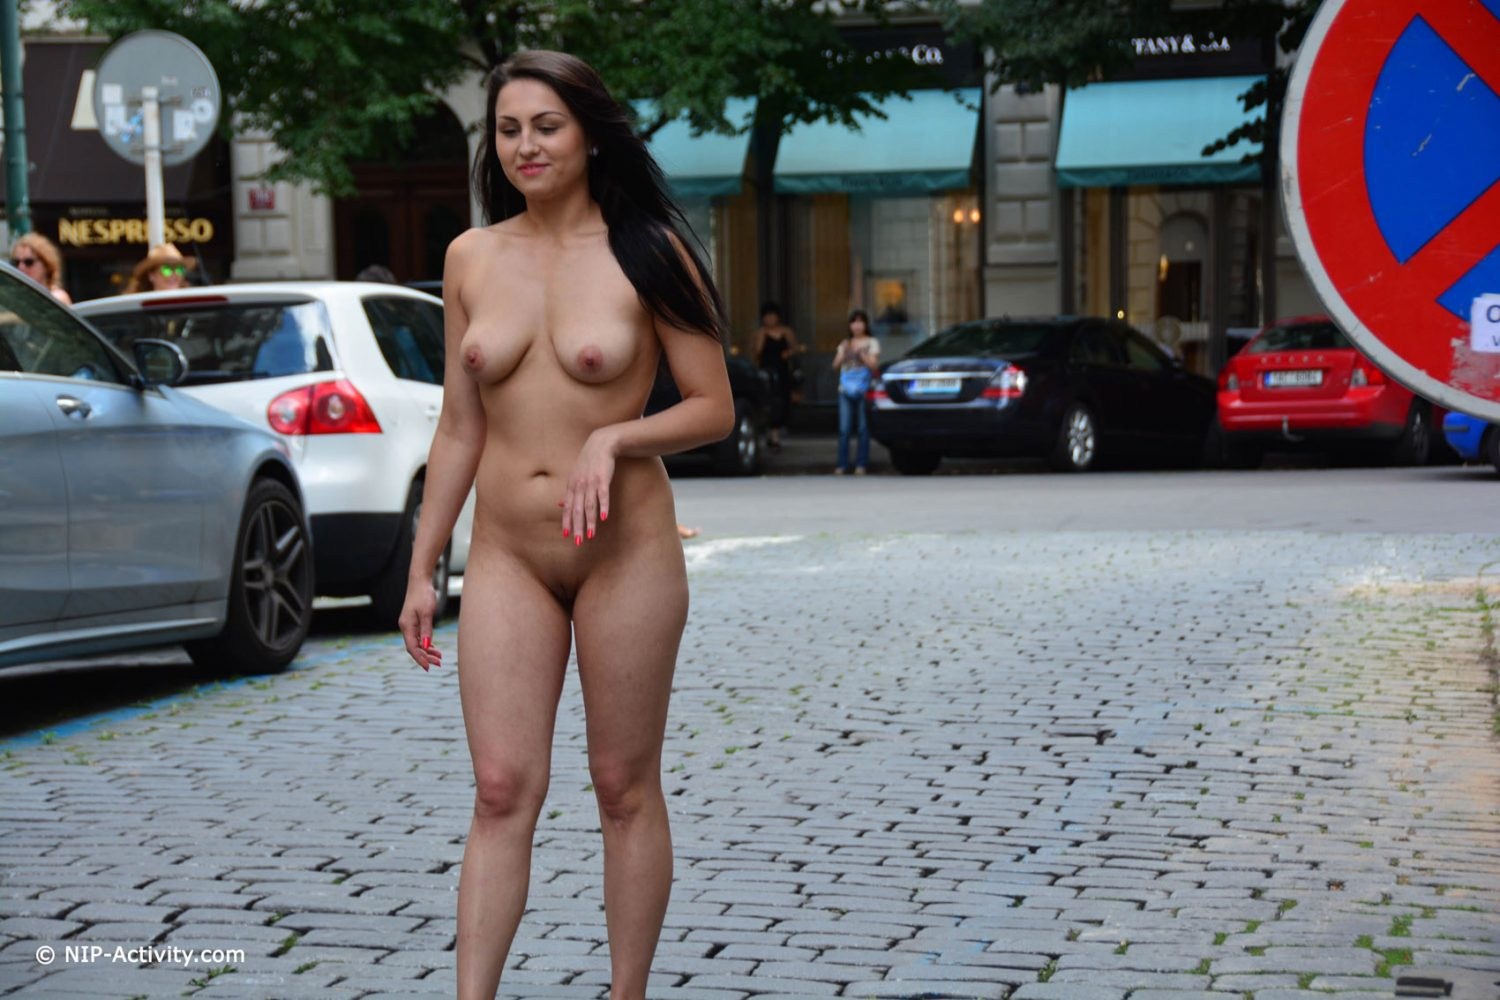 nude-in-public-images-adult-clip-free-movie-video